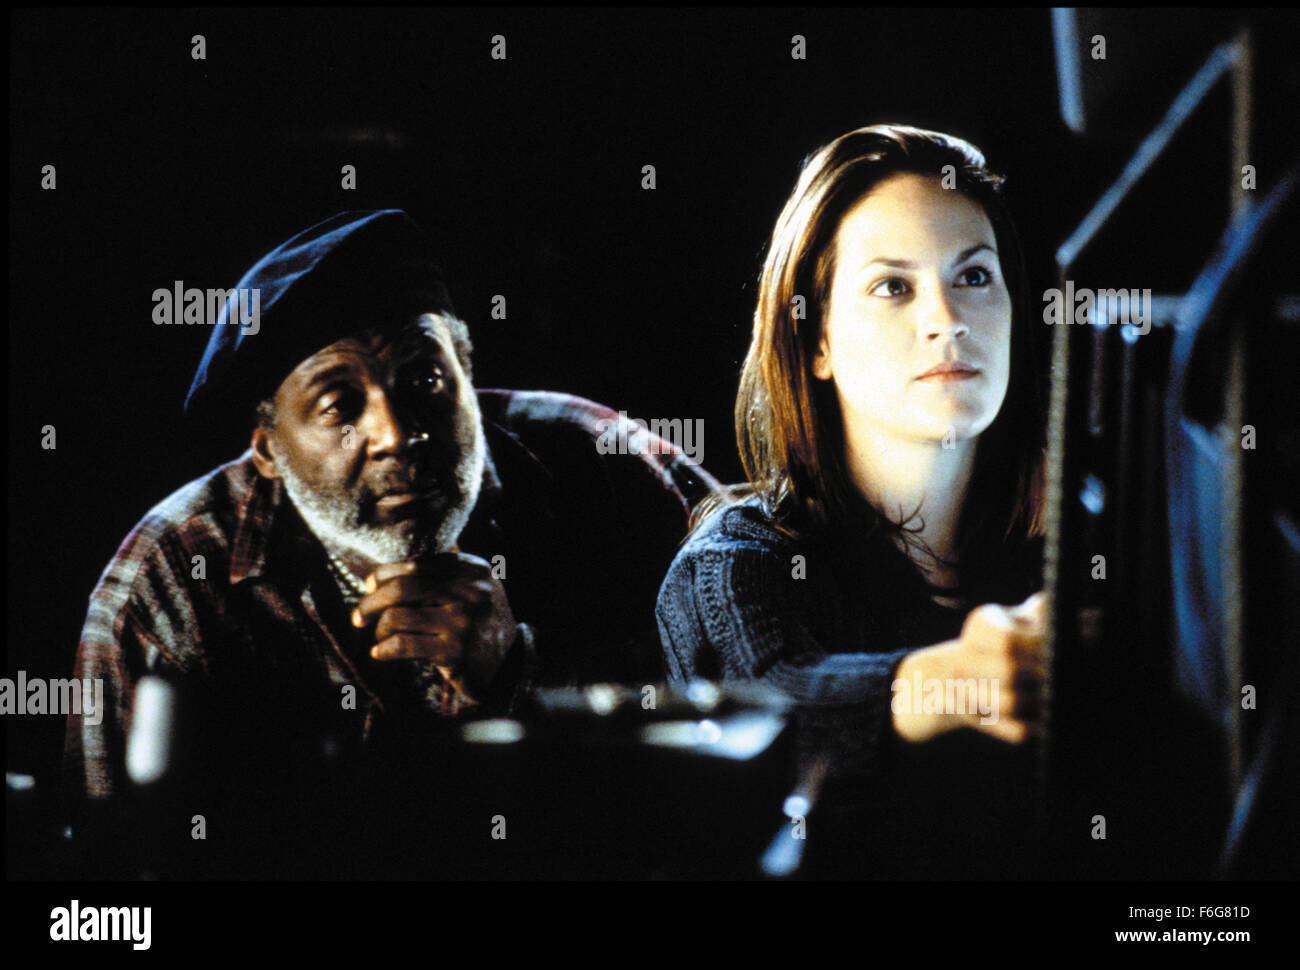 RELEASE DATE: Aug 15, 1997. MOVIE TITLE: Steel. STUDIO: Quincy Jones Entertainment. PLOT: John Henry Irons designs - Stock Image